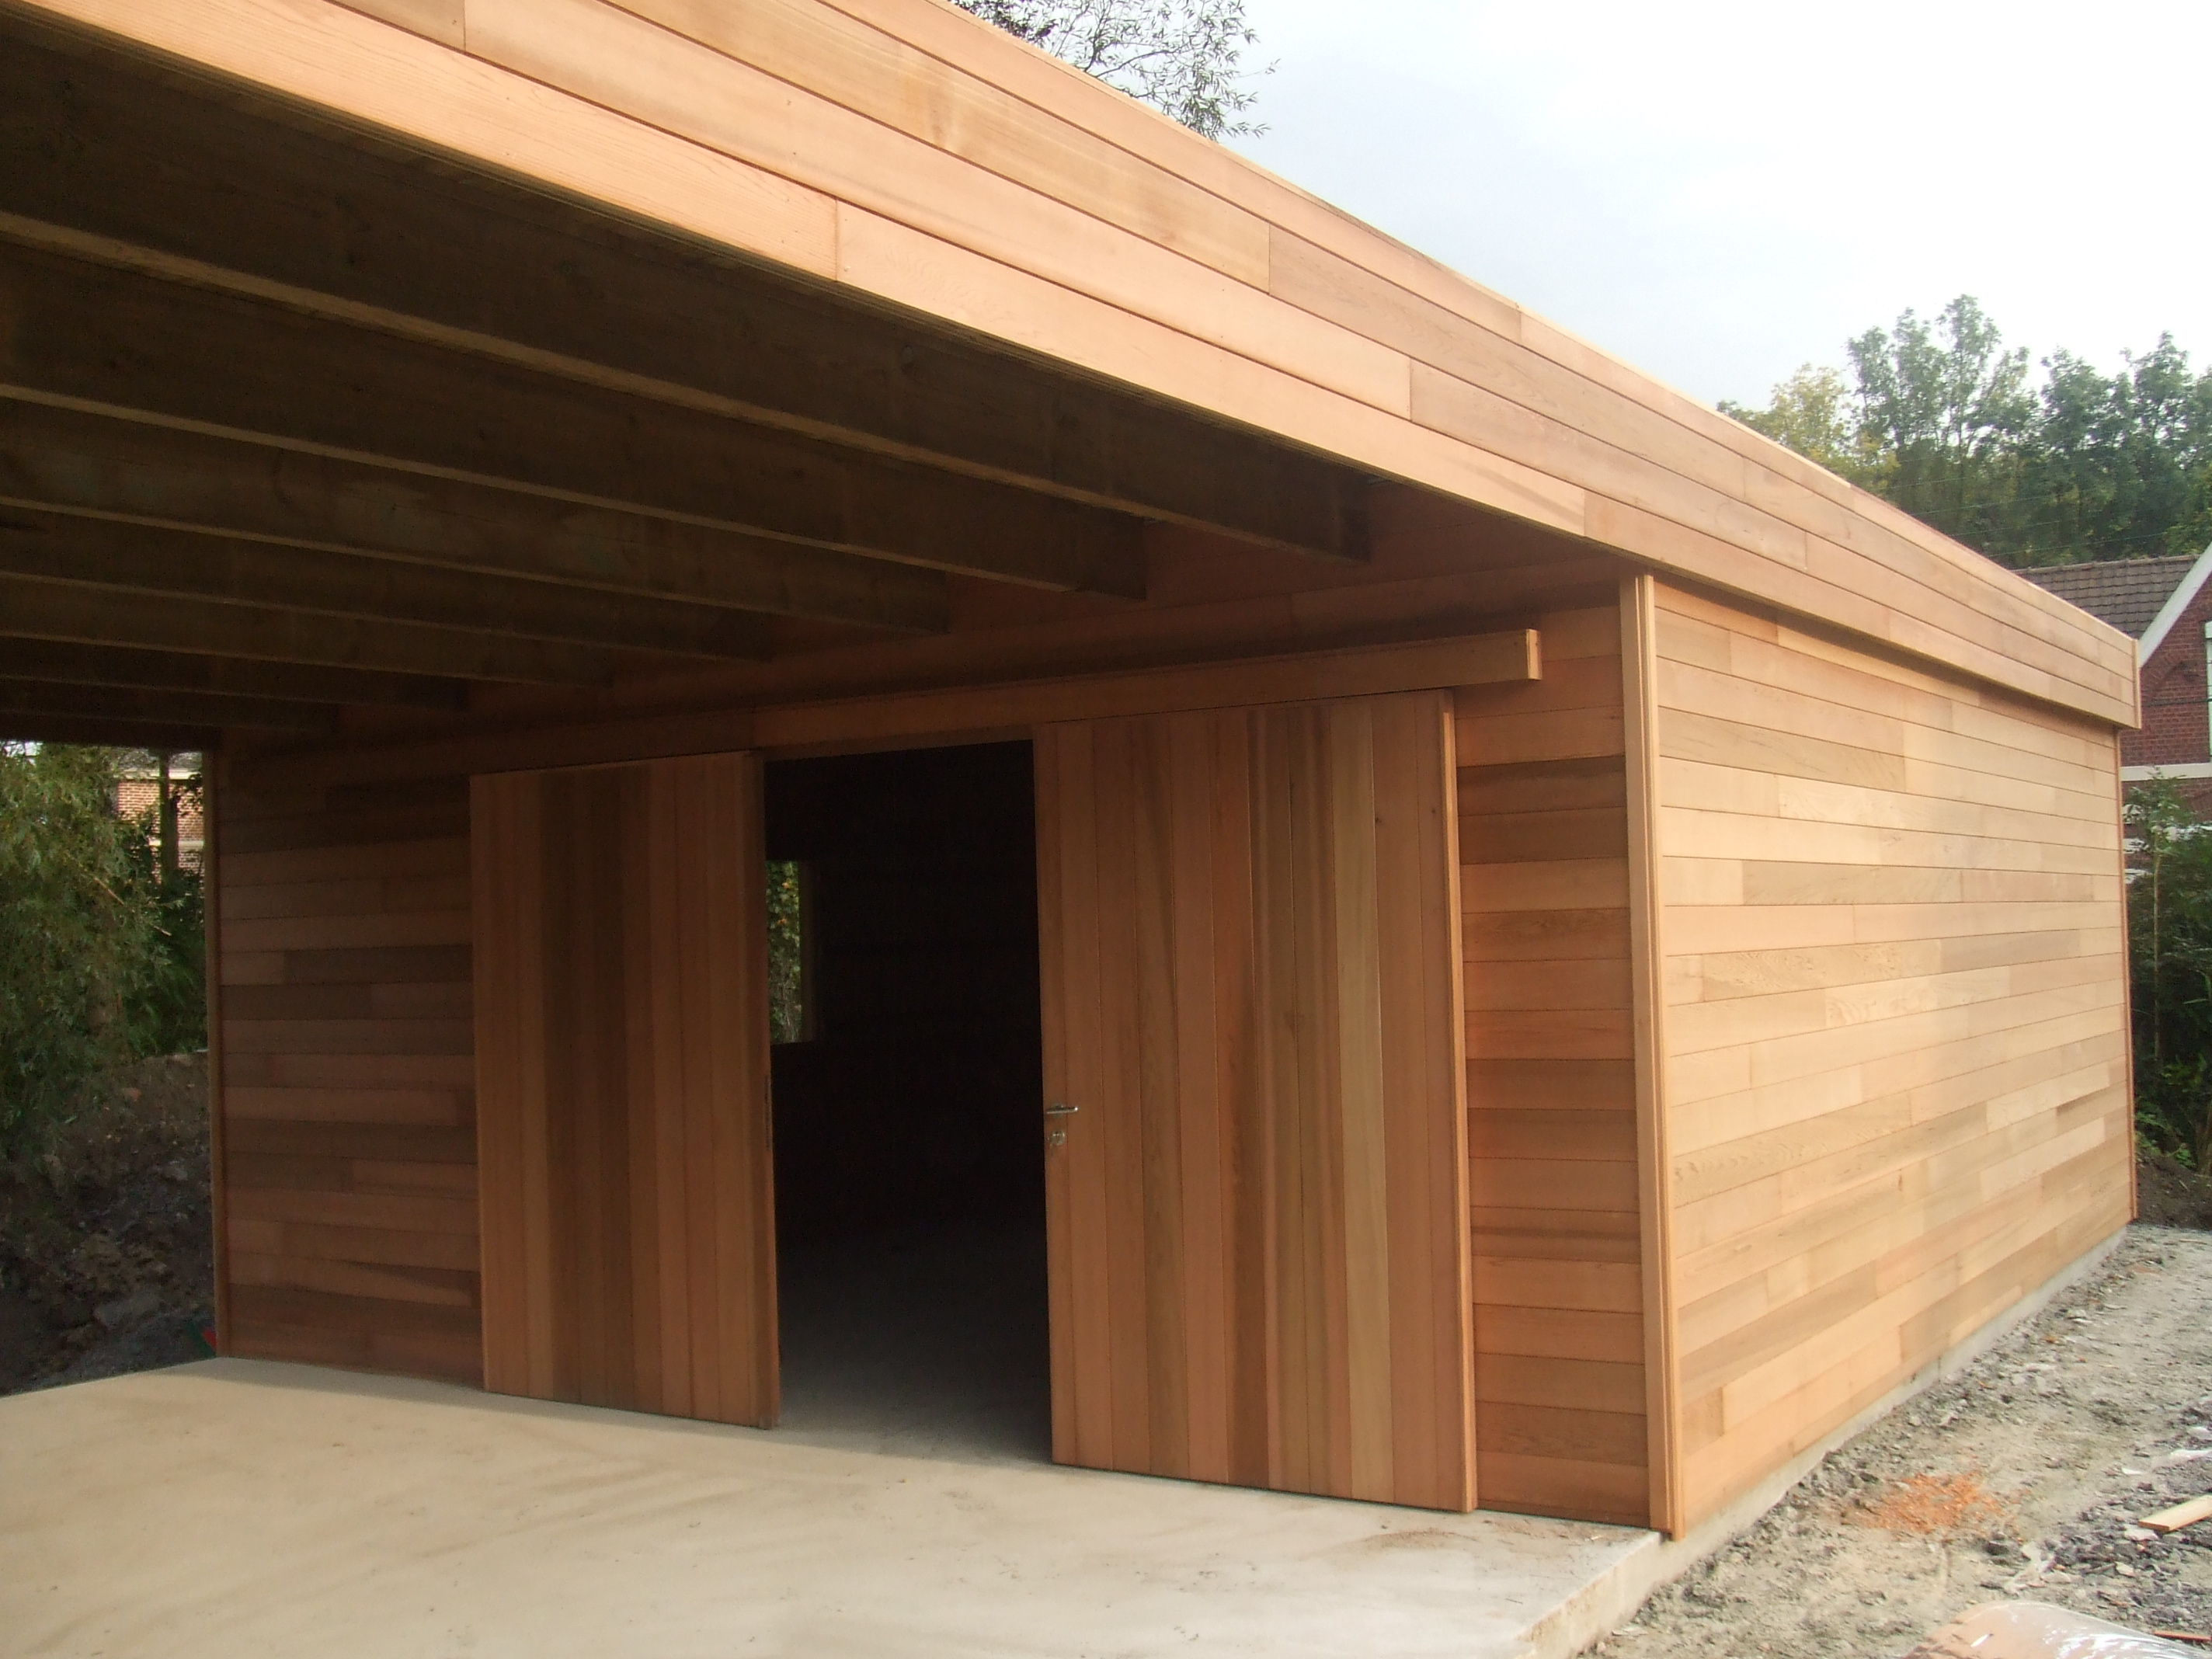 Garage bois sur mesure garage carport en red cedar for Garage en bois autoclave